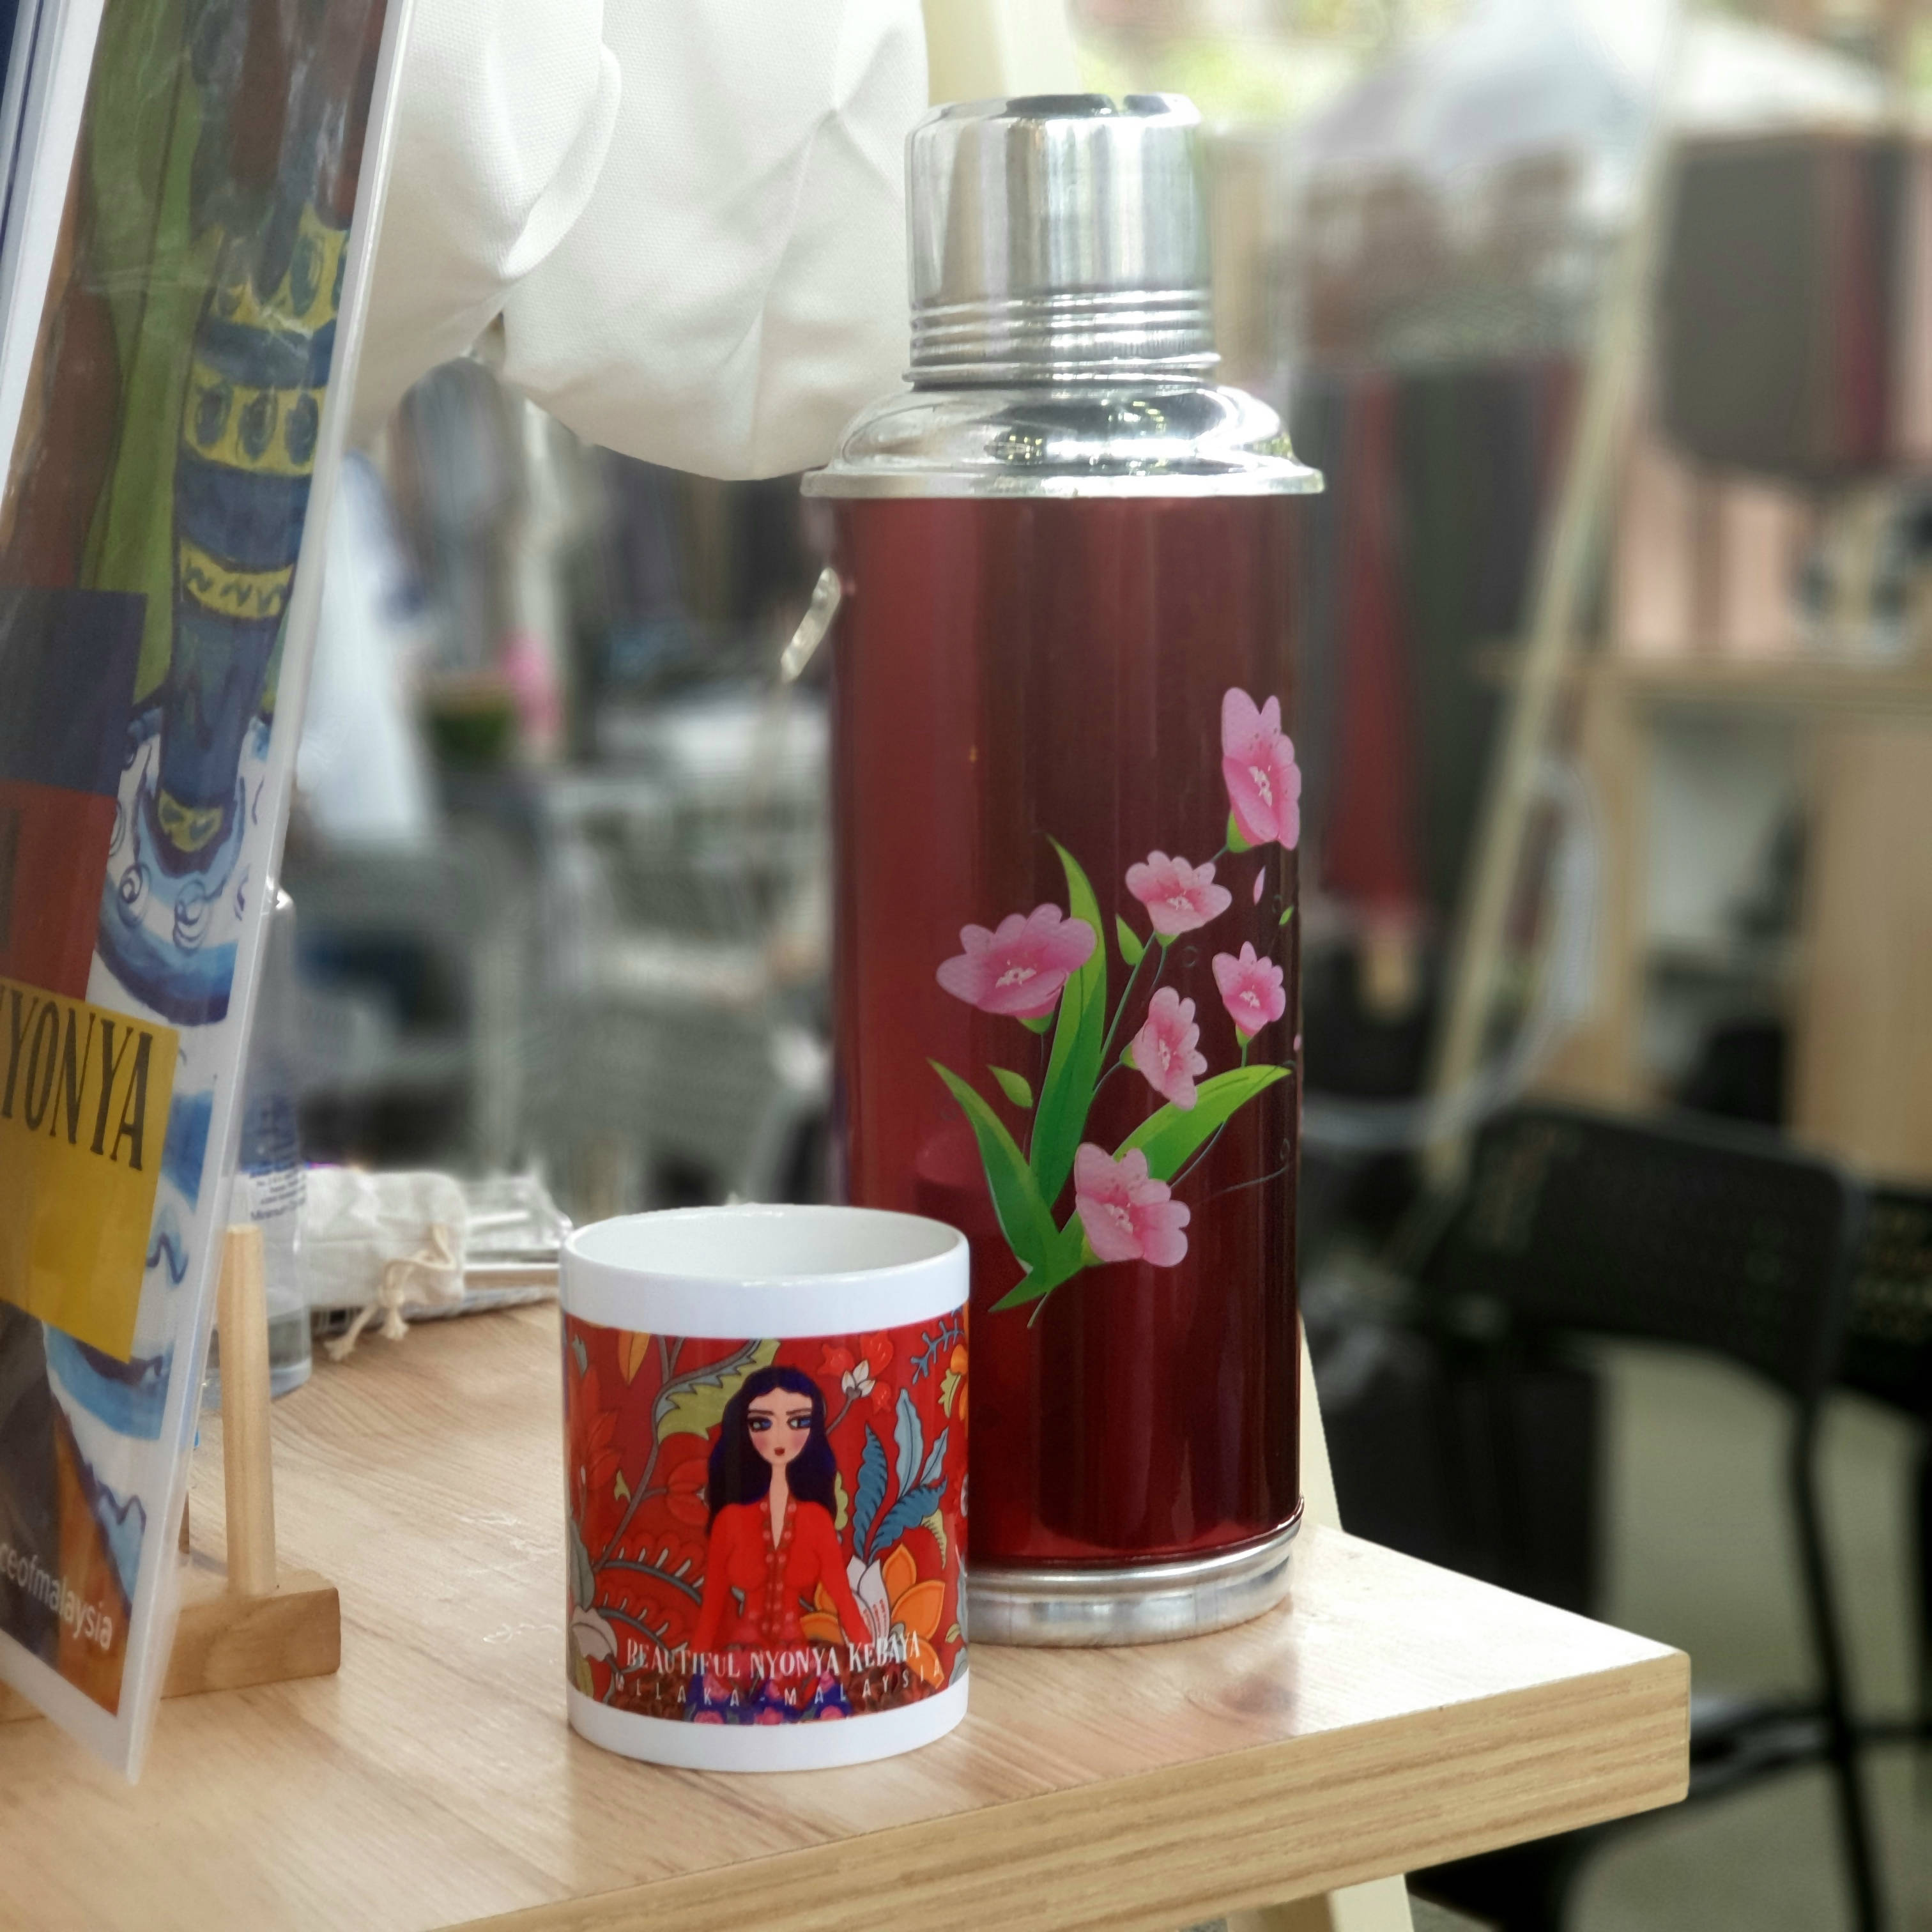 Lady In Red Kebaya Ceramic Mug